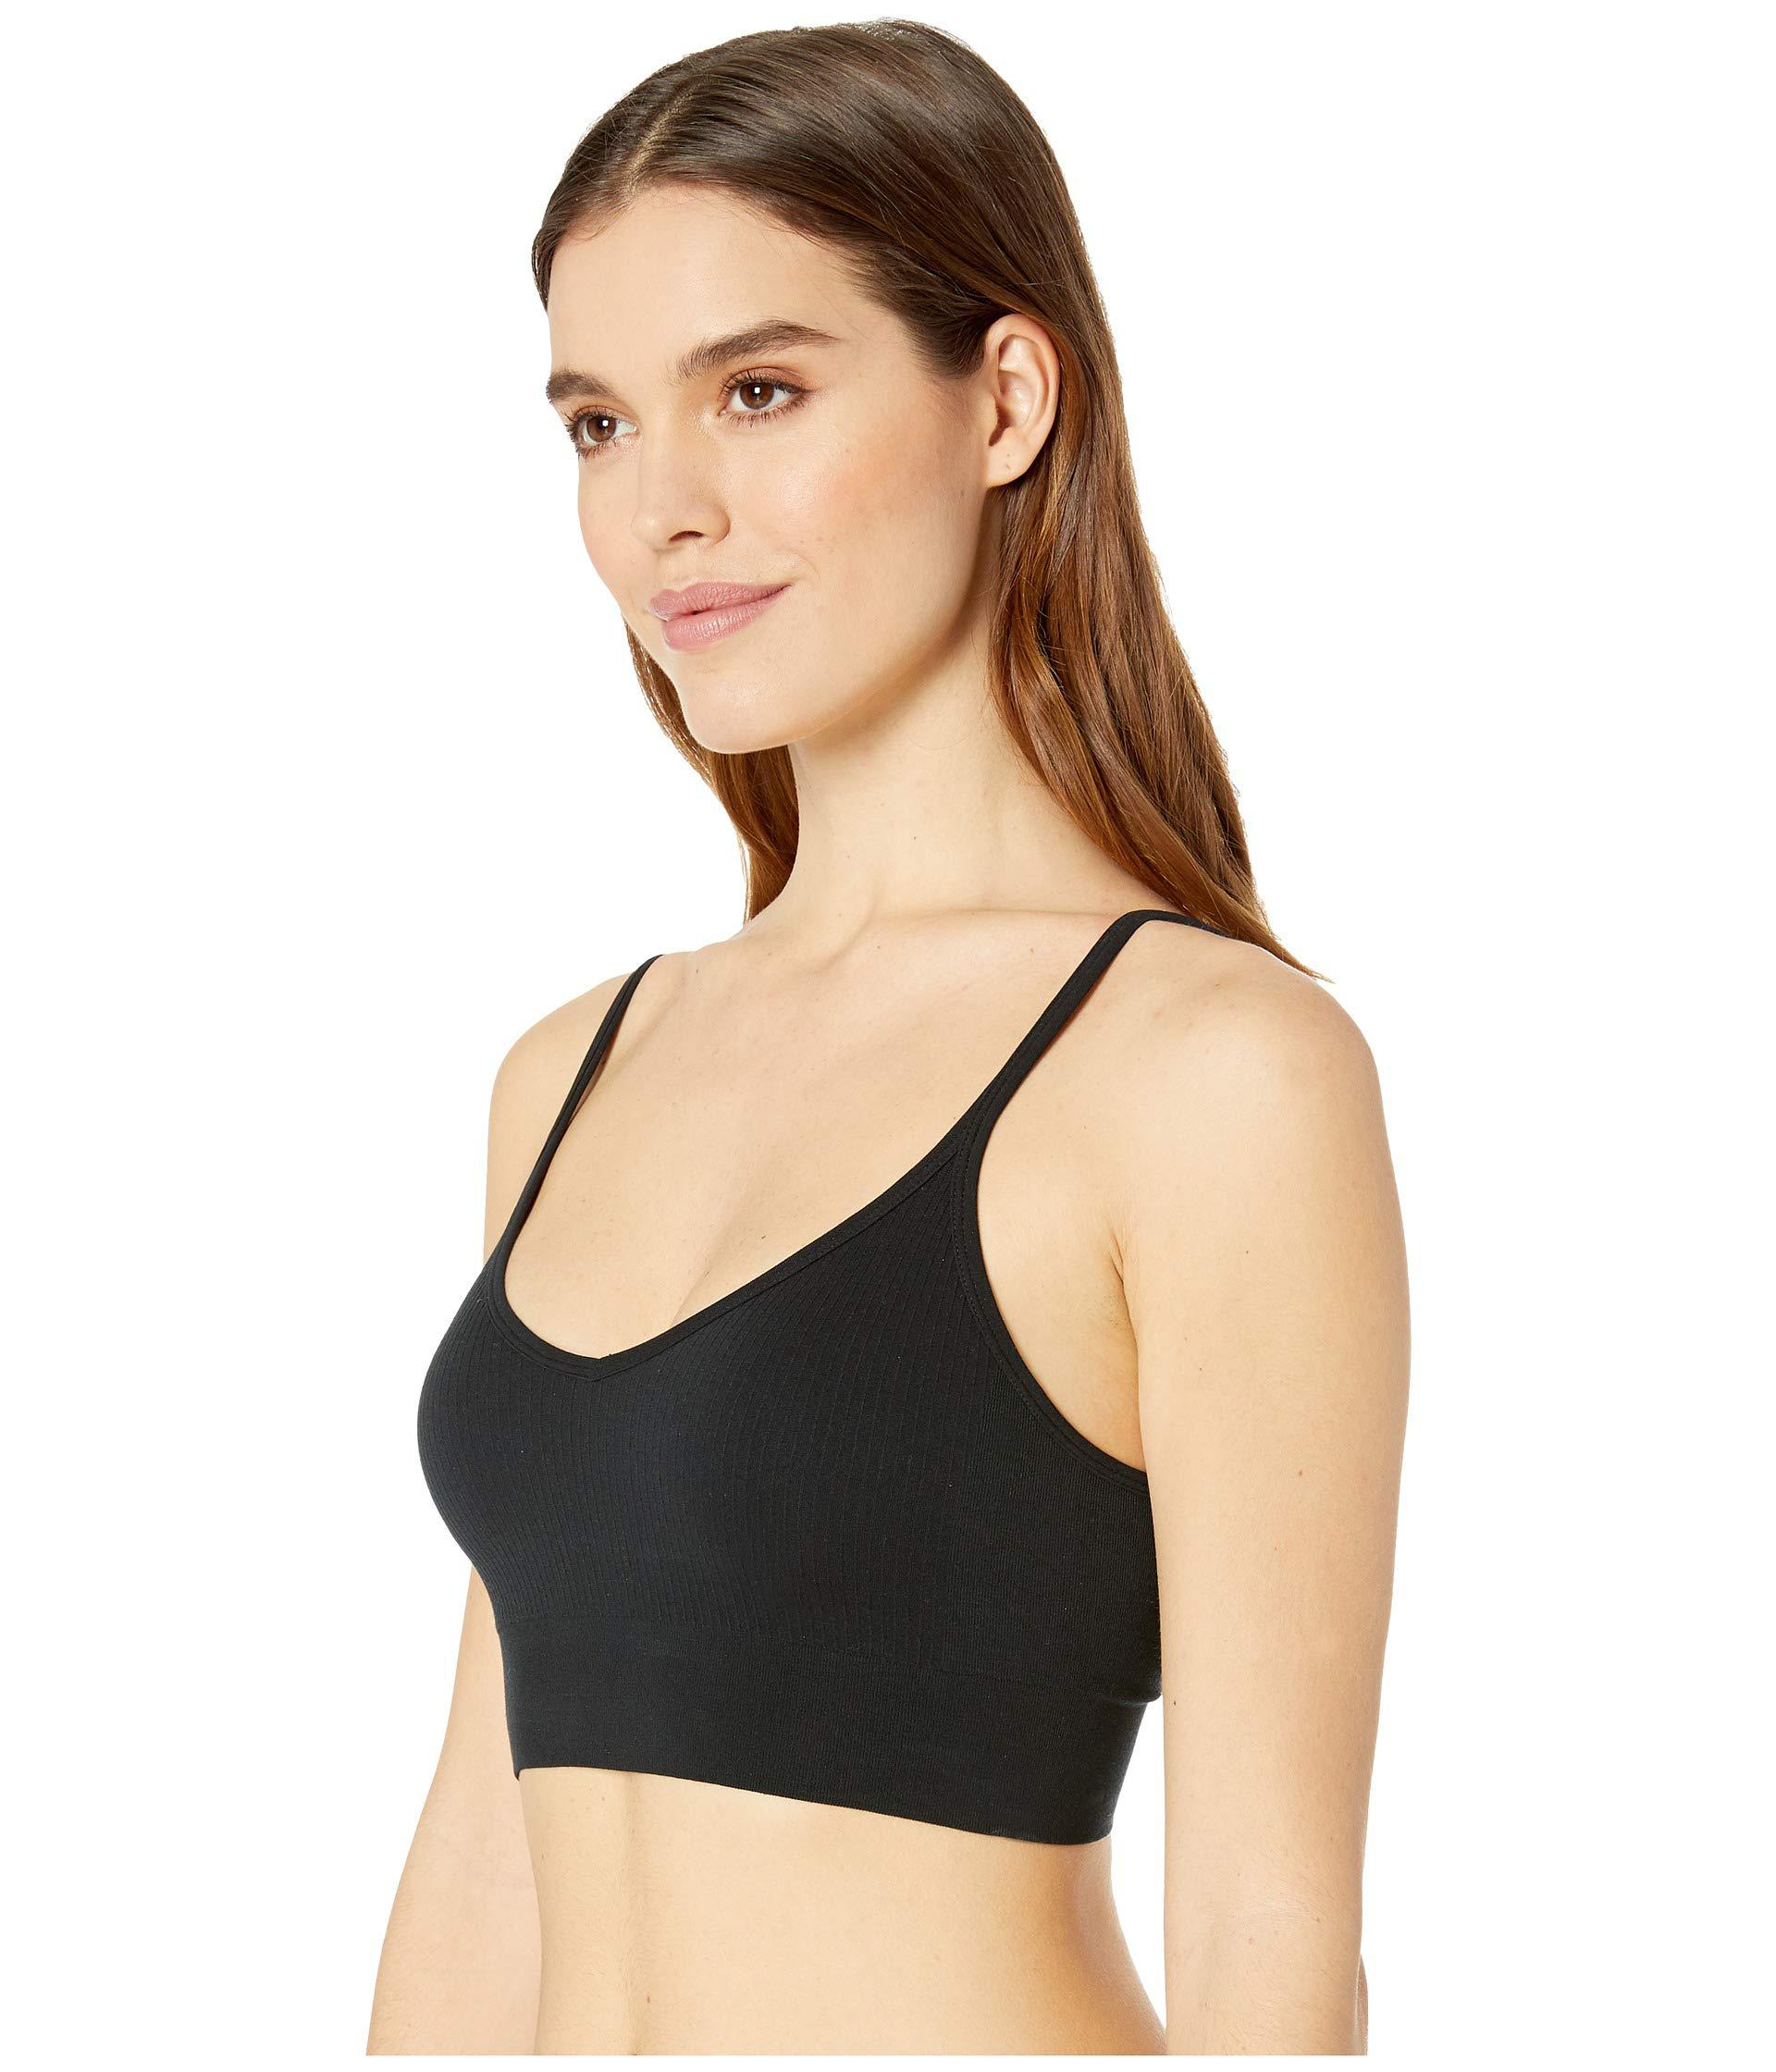 cfefc6d87b22e Lyst - Spanx Laidback Layers Seamless Bralette in Black - Save  36.8421052631579%